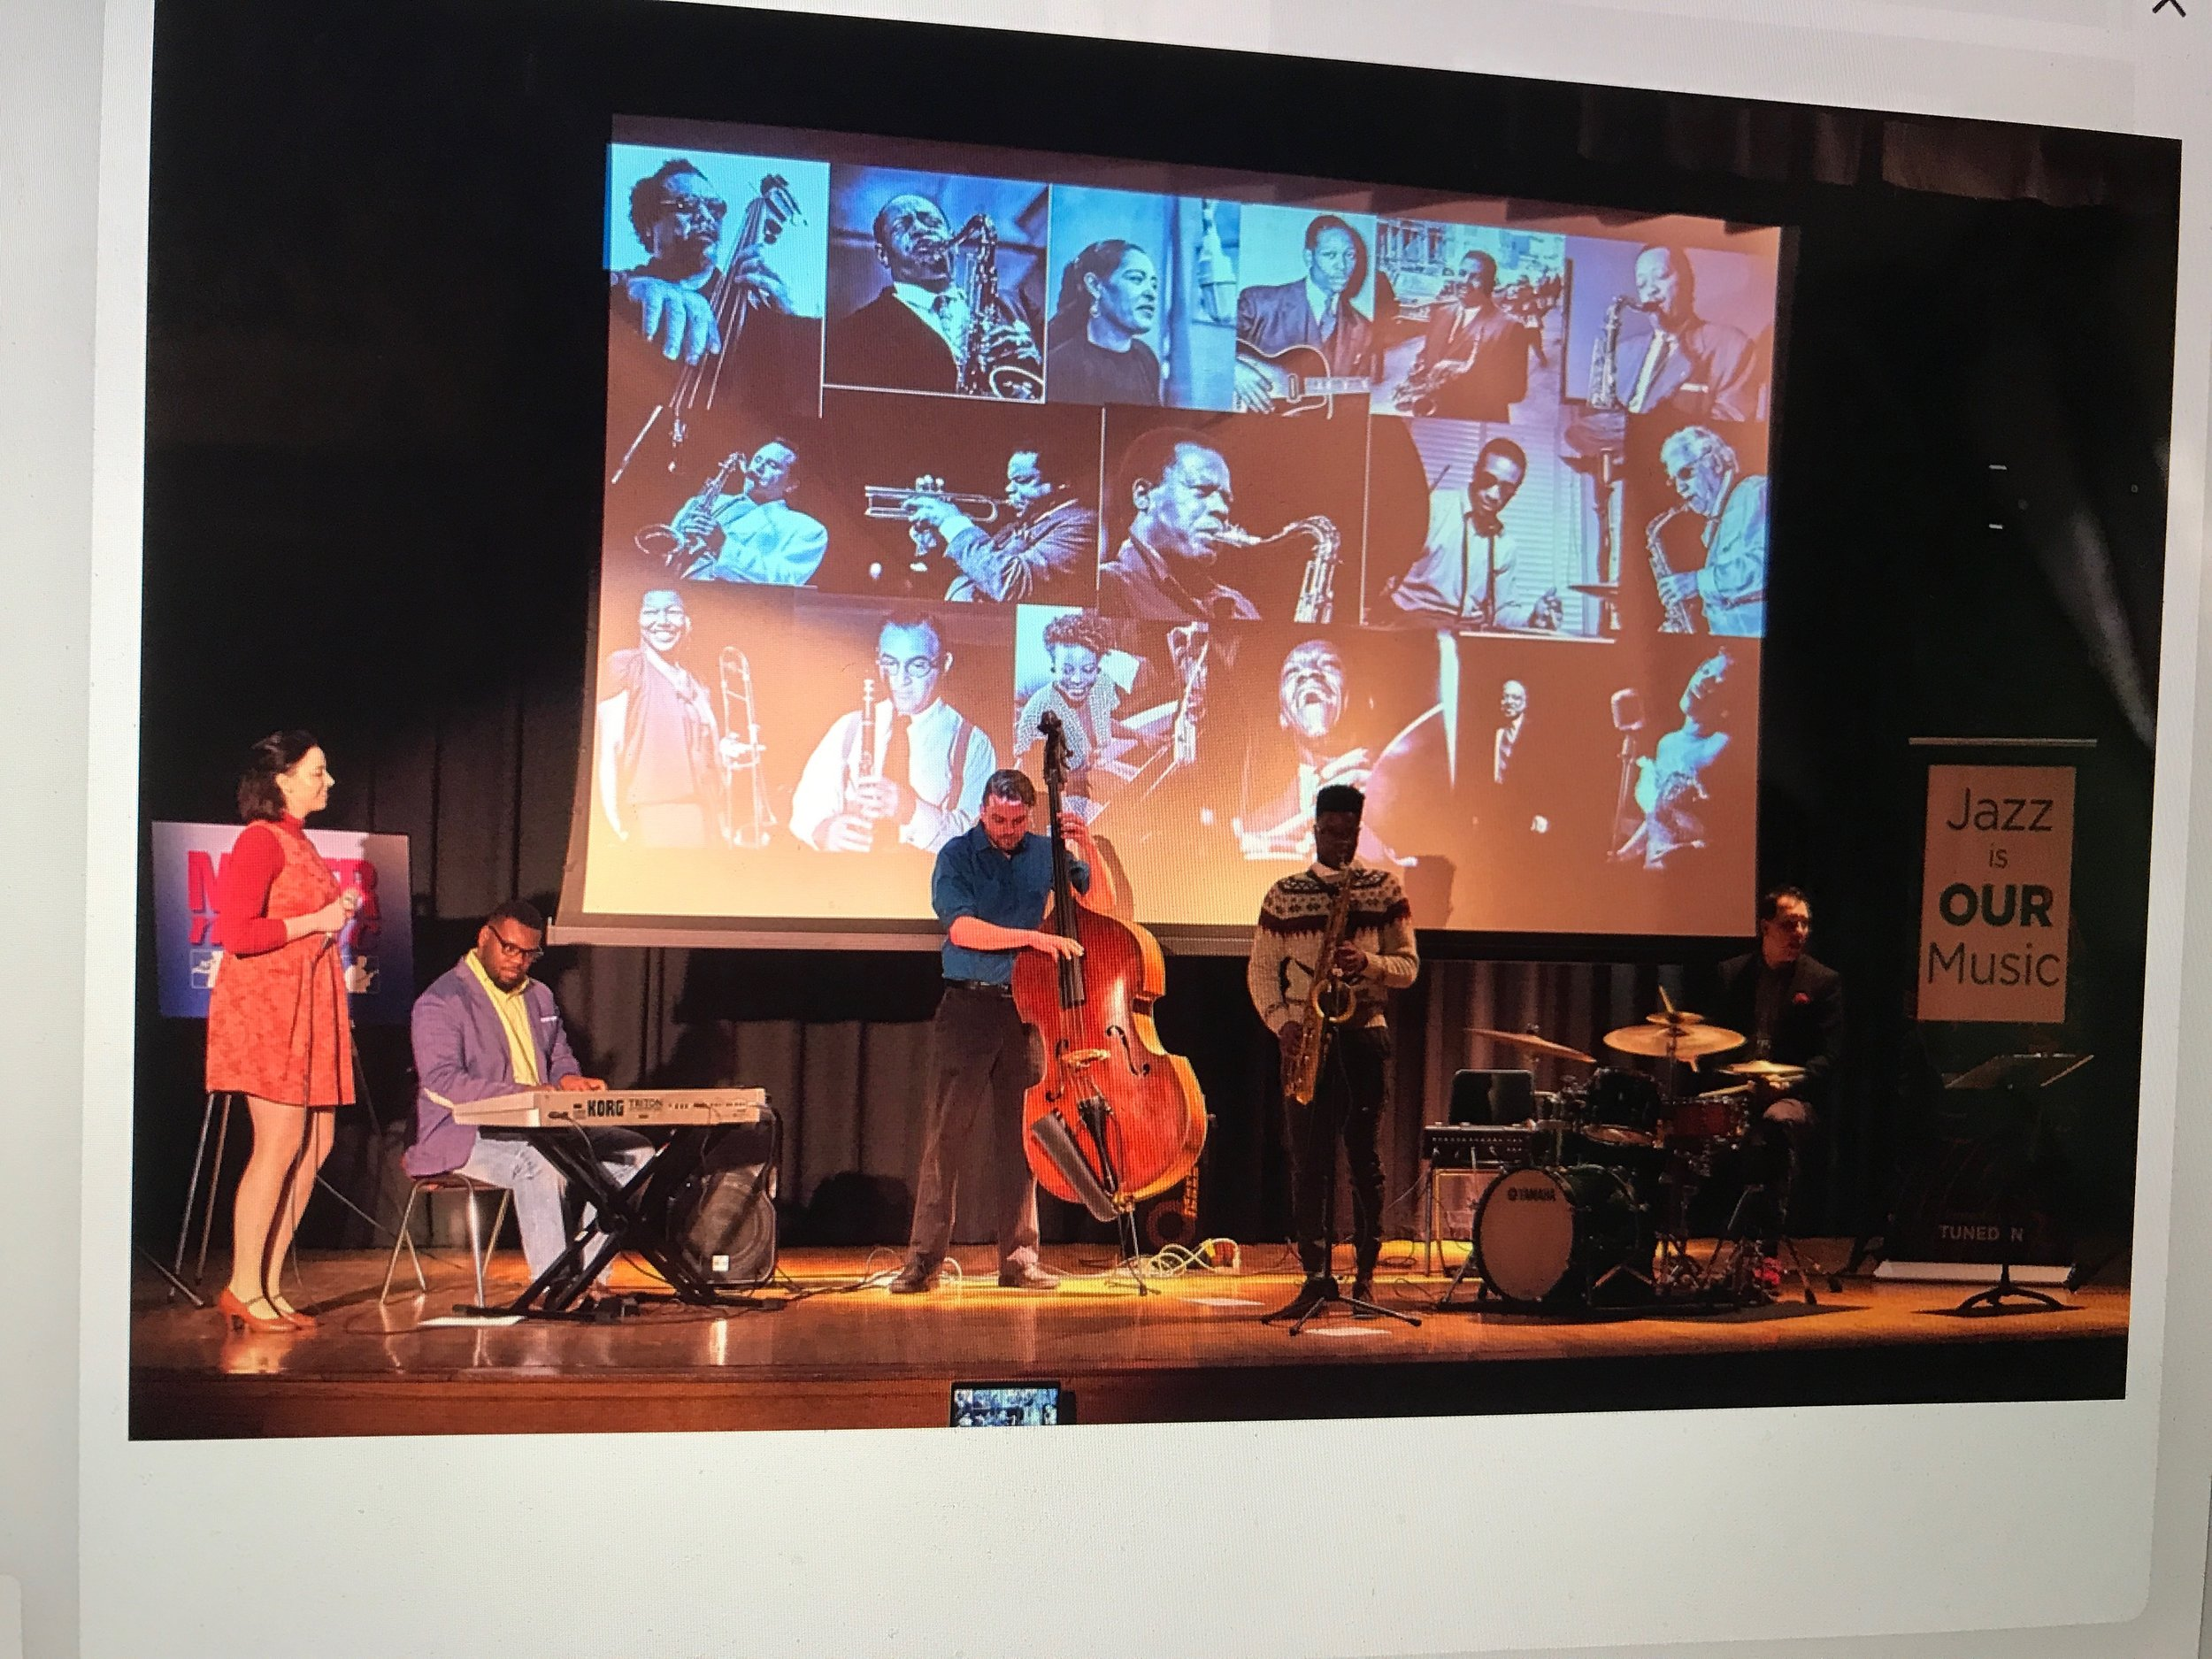 Learn more about Jazz Is Our Music